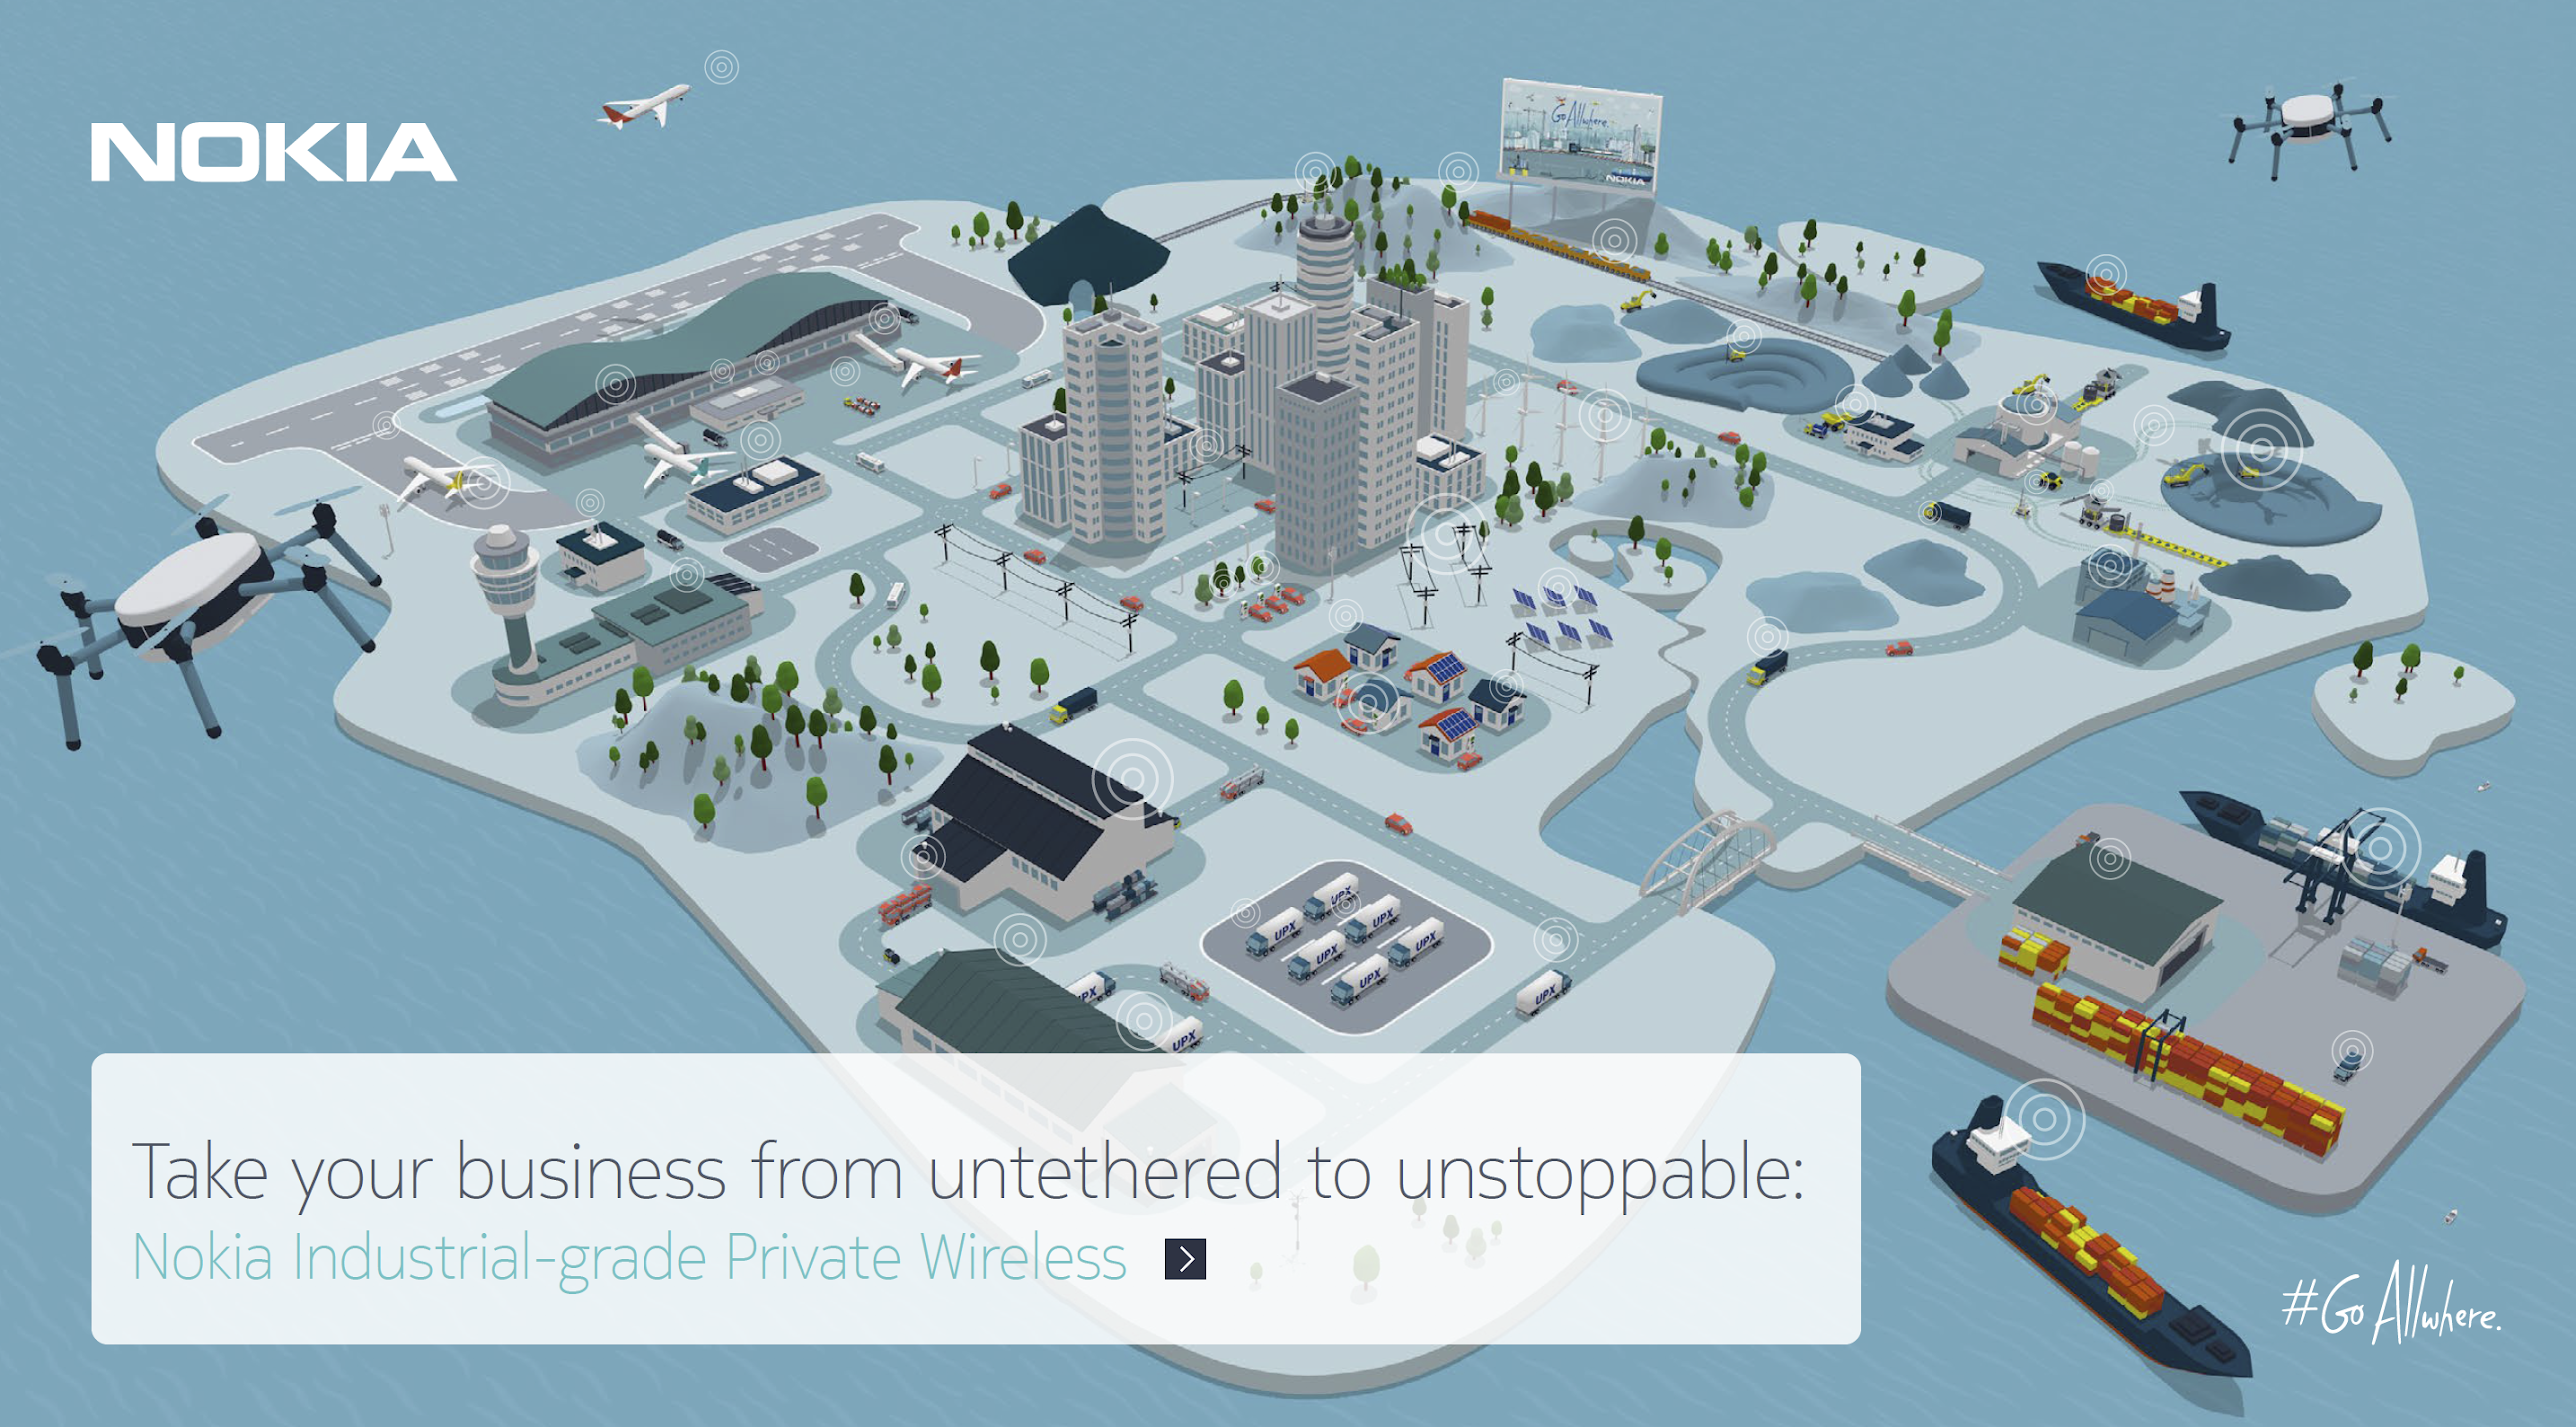 Nokia 5G-ready Industrial-grade Private Wireless Use Cases